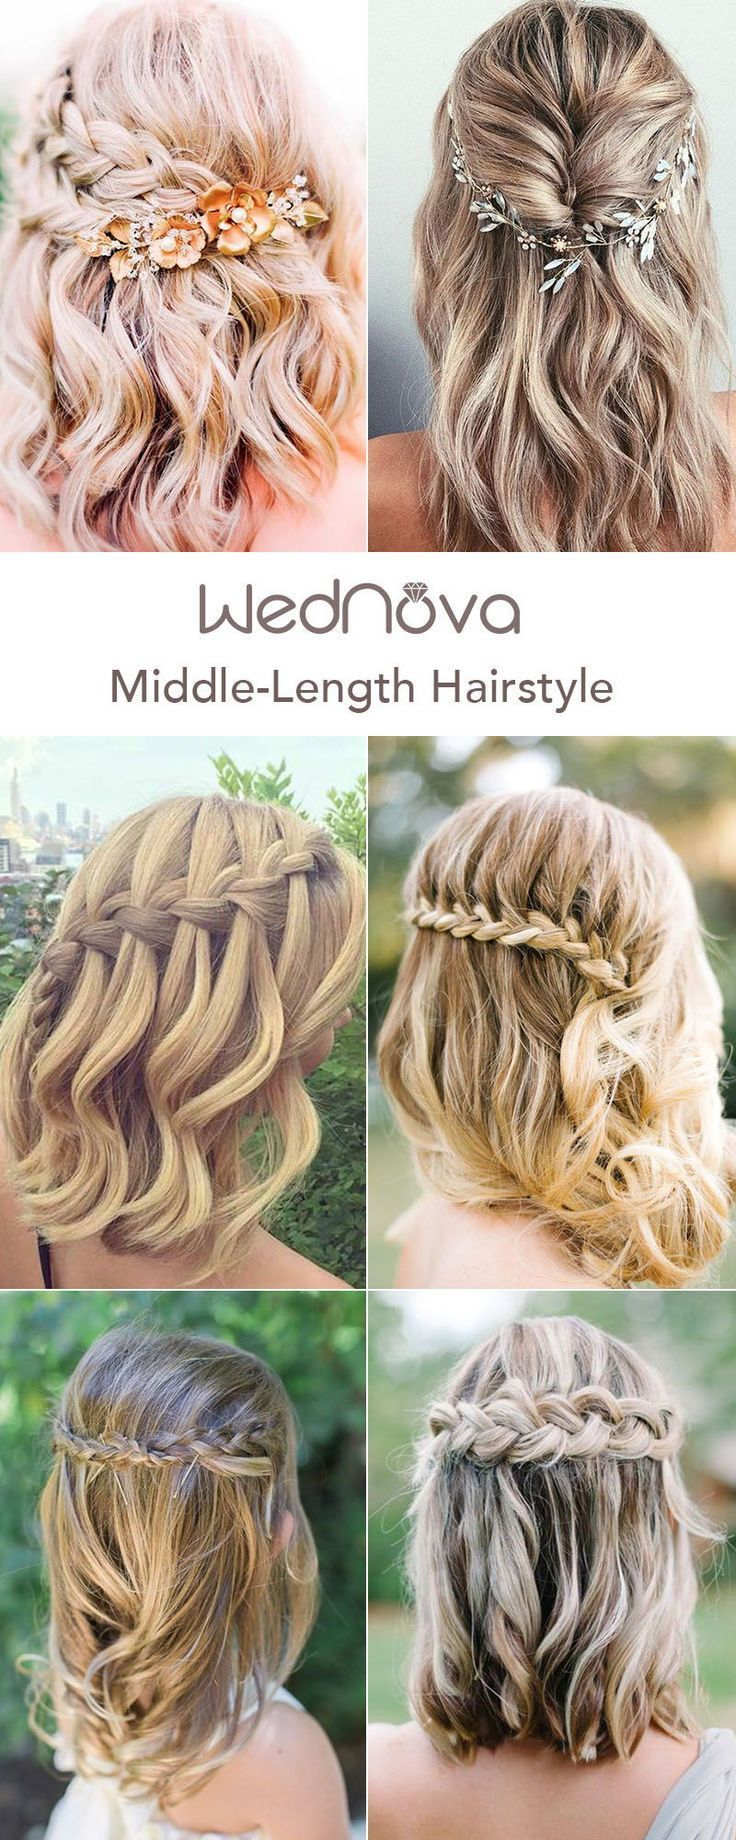 48 Easy Wedding Hairstyles Best Guide For Your Bridesmaids In 2019 Hairstyles Short Wedding Hair Half Up Half Down Short Hair Bridesmaid Hair Medium Length